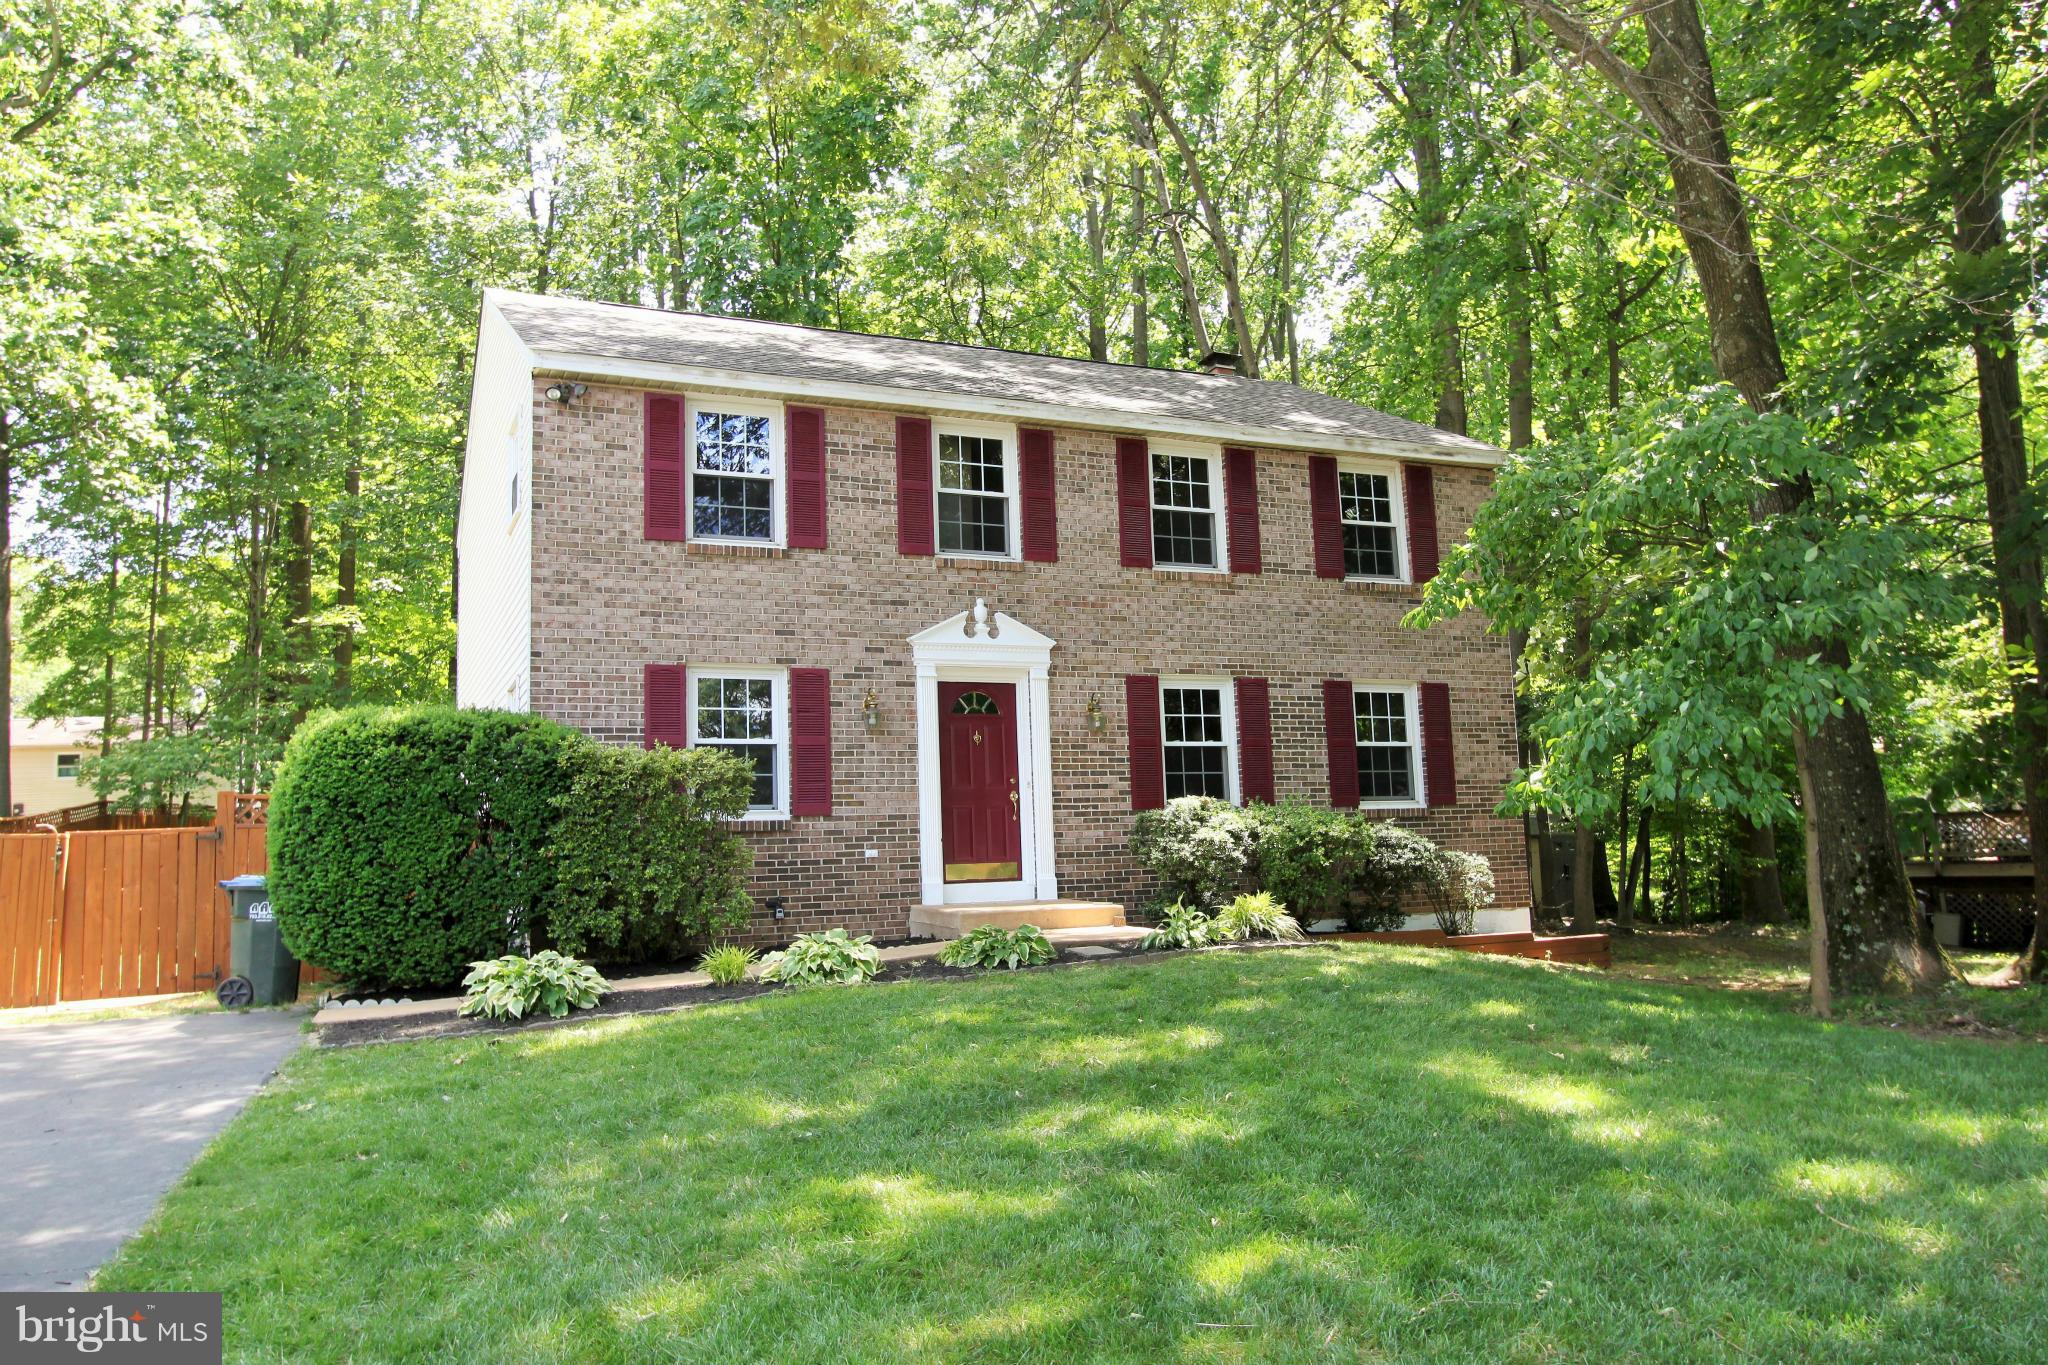 BEAUTIFUL COLONIAL ON QUIET CUL-DE-SAC. MASTER WITH DRESSING AREA, VANITY AND WALK-N CLOSET. LARGE BEDROOMS. FORMAL LIVING ROOM WITH BUILT-IN BOOKSHELVES, FIREPLACE IN FAMILY ROOM OFF OF EAT IN KITCHEN. ALL NEW CARPET, FRESH PAINT AND NEW ROOF.